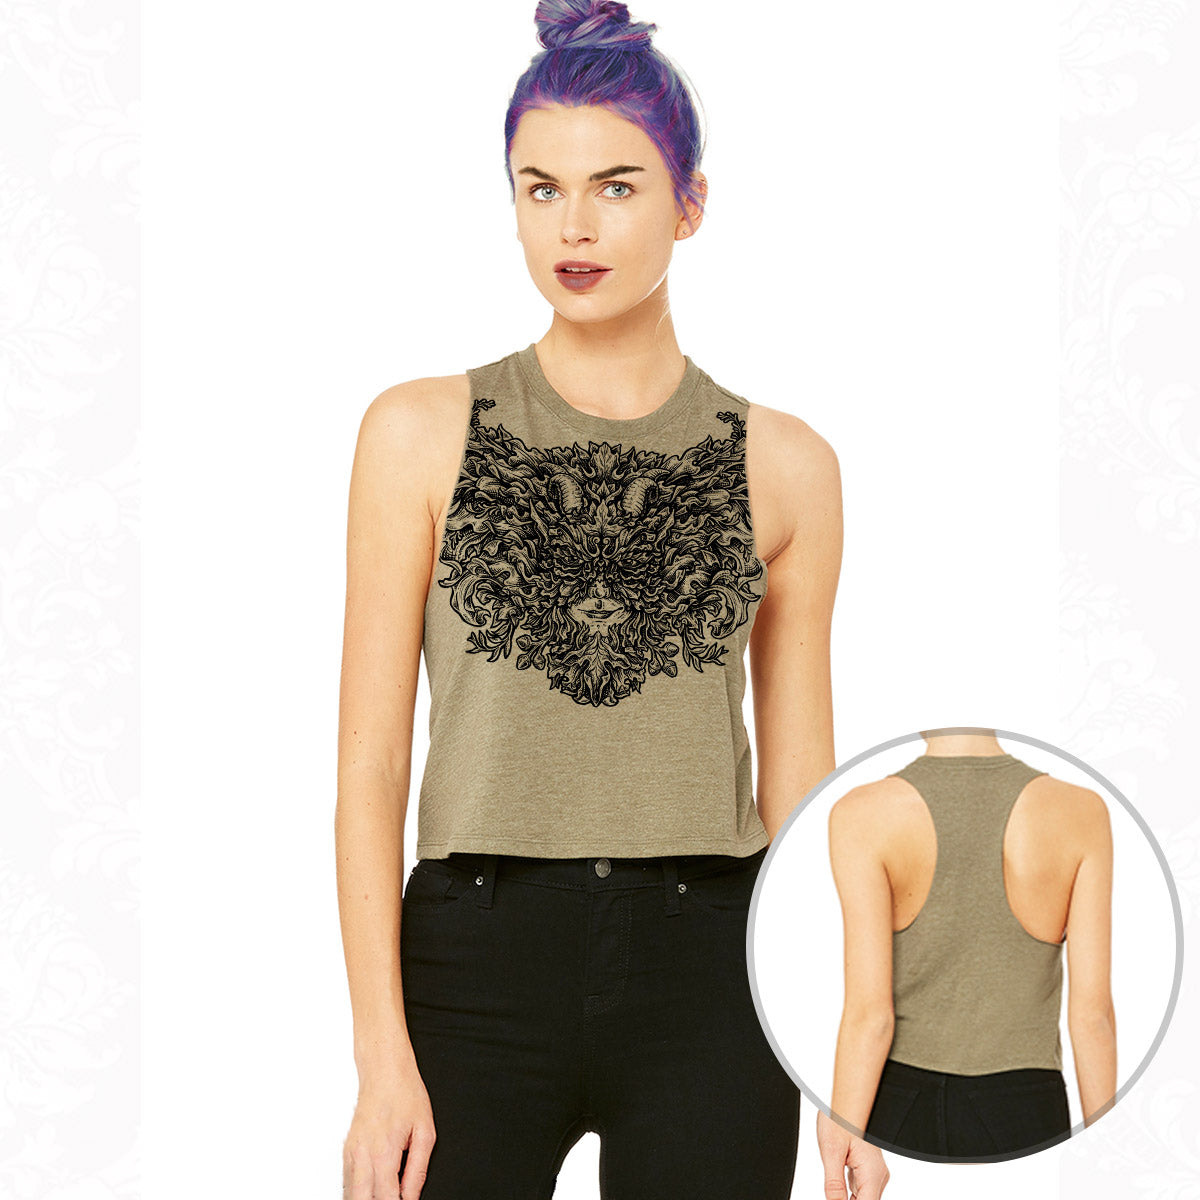 The Greenman Crop Tank